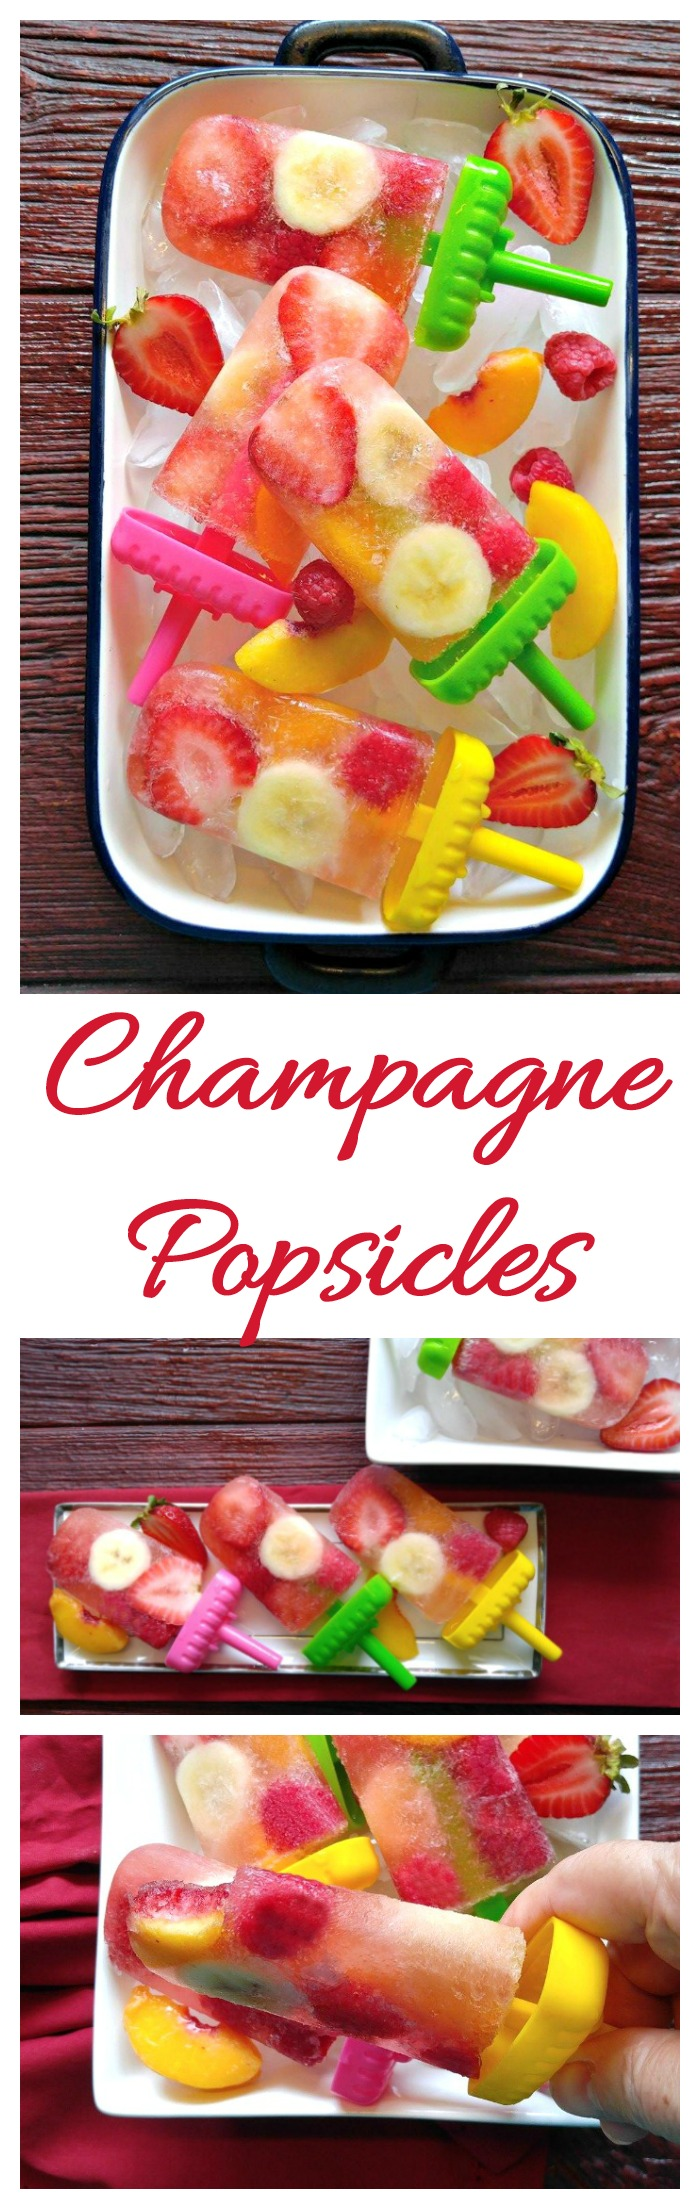 Thee champagne popsicles are a great tasting adult frozen treat. They are loaded with fresh fruit.